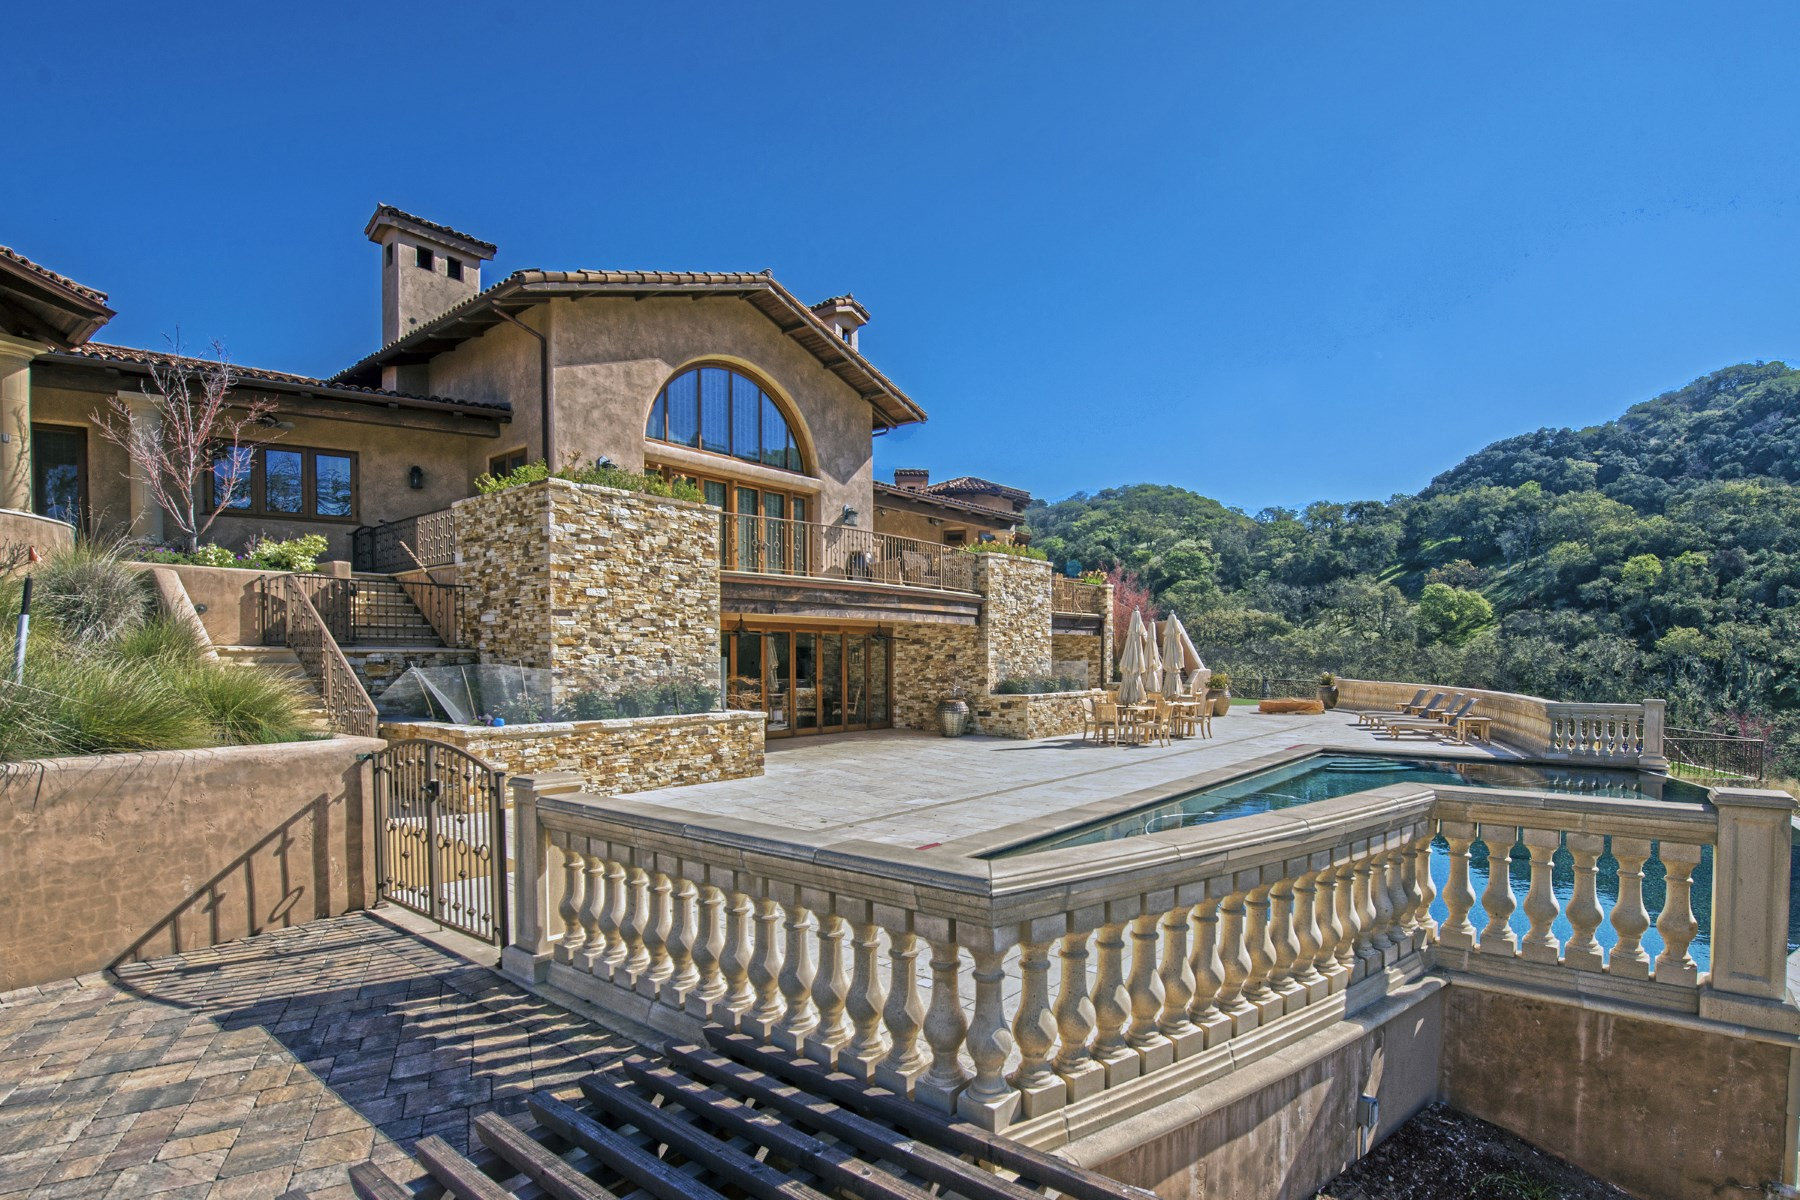 Single Family Home for Sale at Astonishing Approx. 53-Acre Estate 16 Vasquez Trail Carmel, California 93923 United States